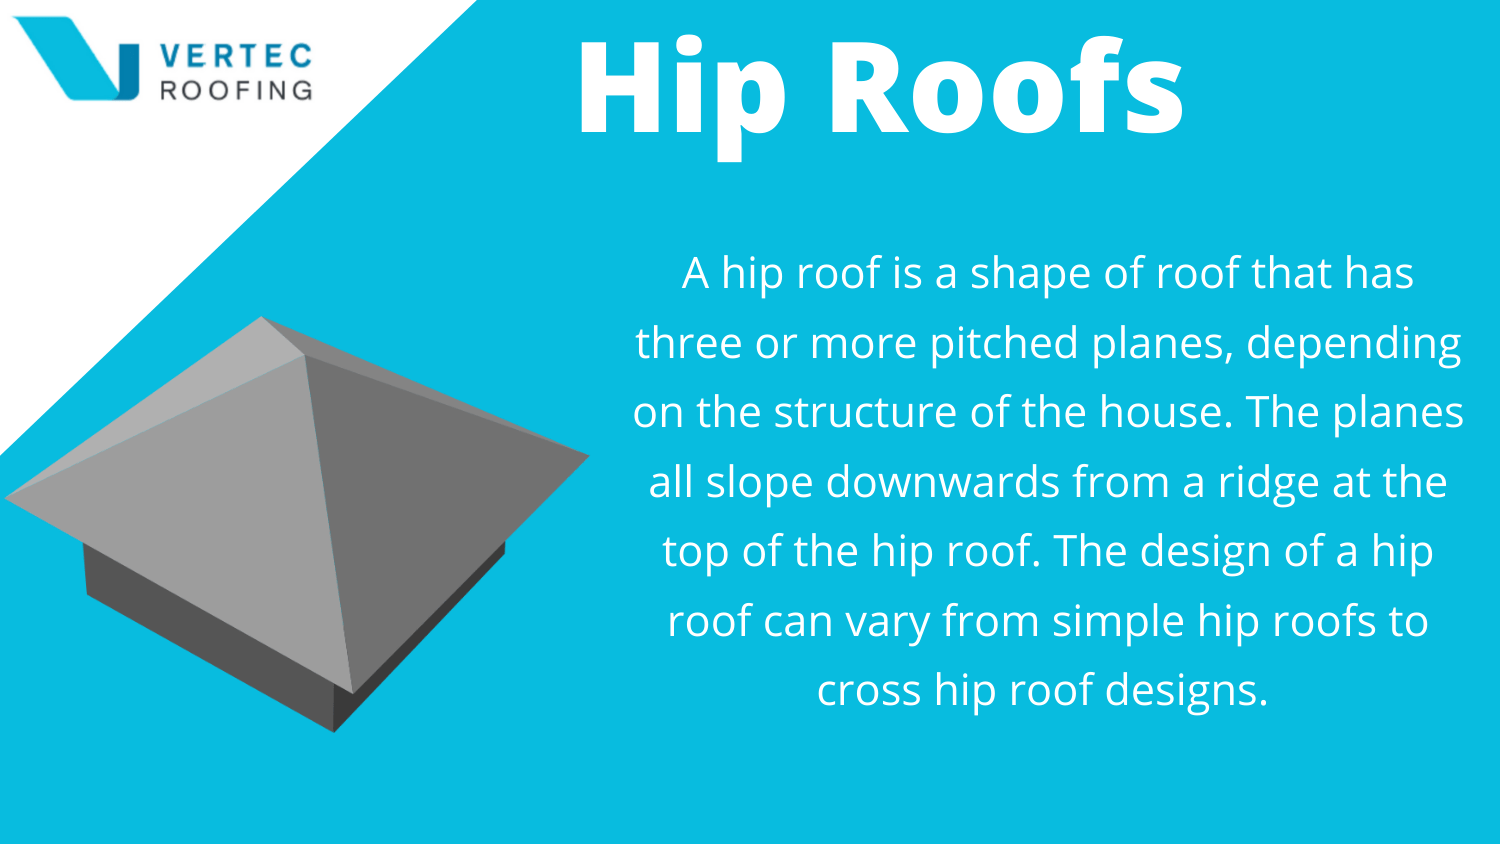 Hip Roof Vs Gable Roof Pros And Cons Of Each Roof Type